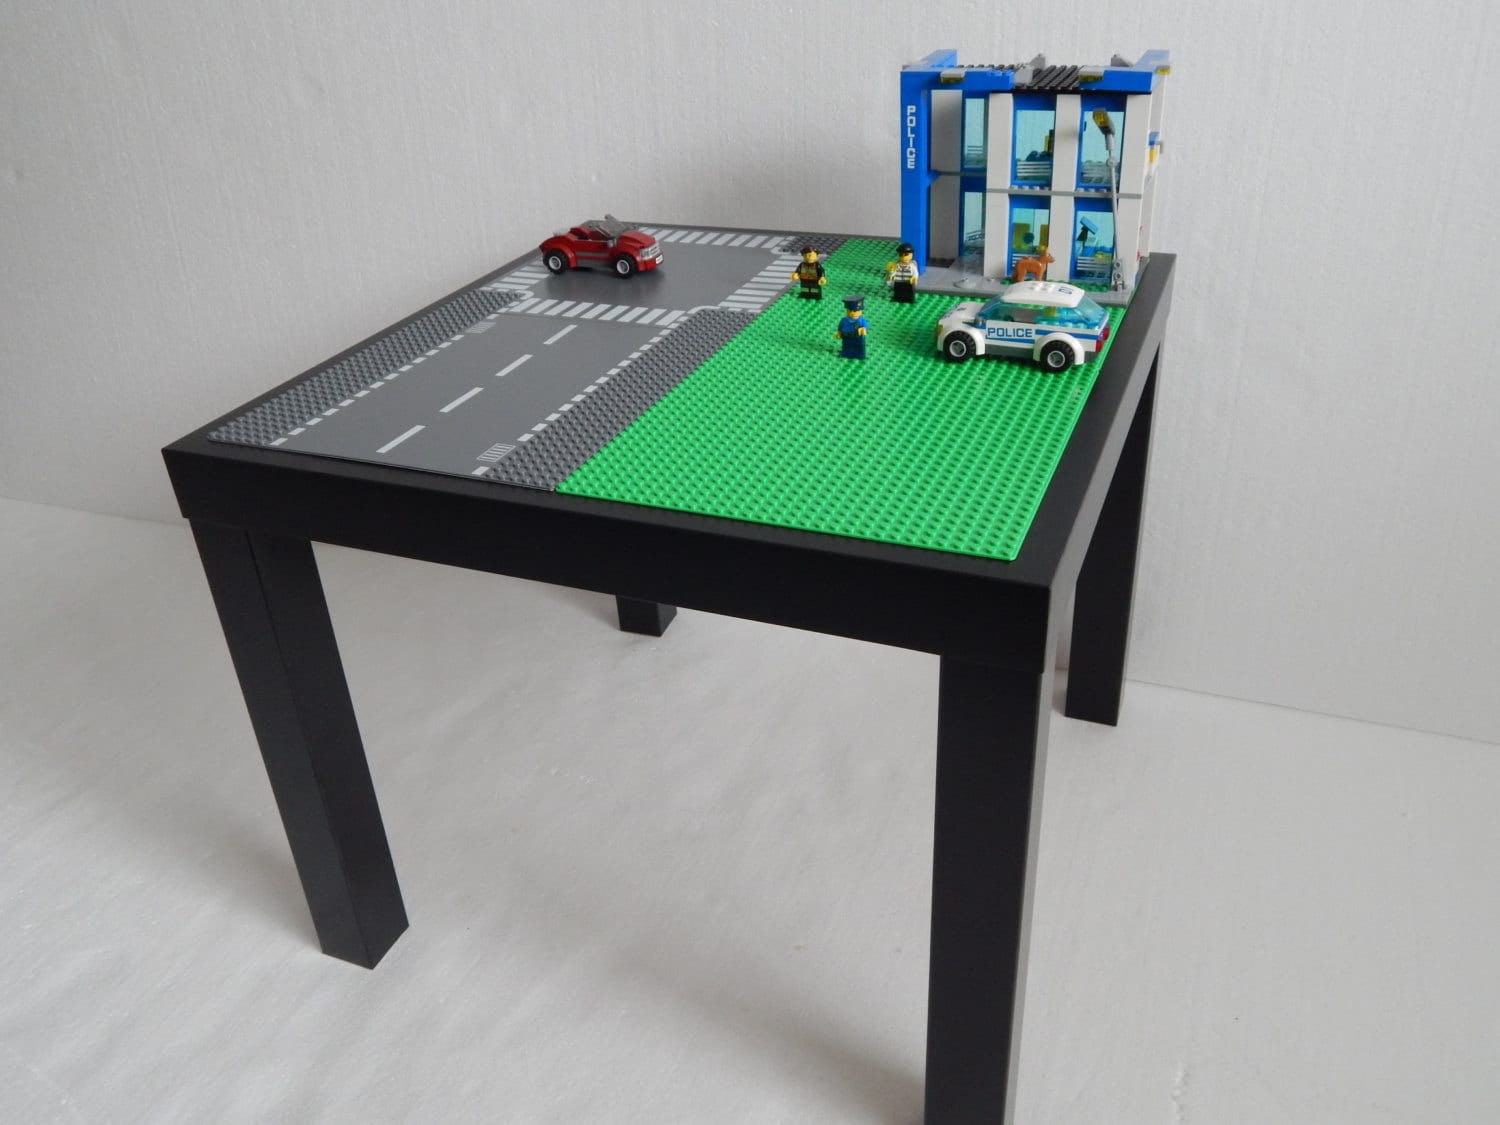 lego table large 20x20 green with roadway lego. Black Bedroom Furniture Sets. Home Design Ideas